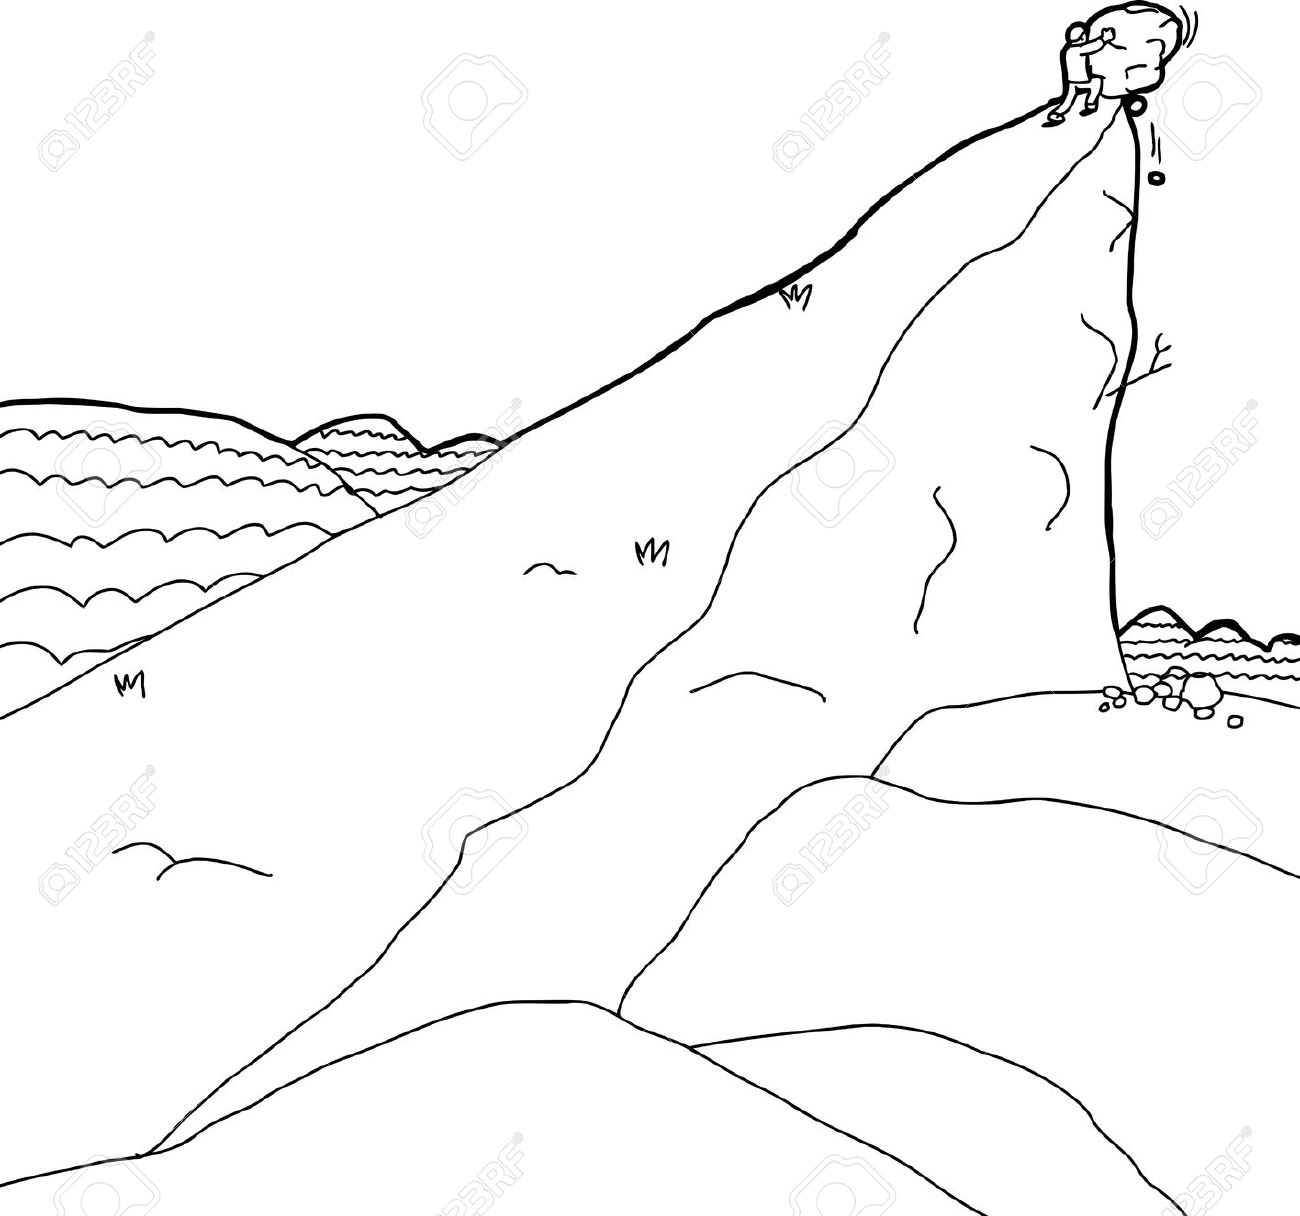 Man pushing a rock clipart.